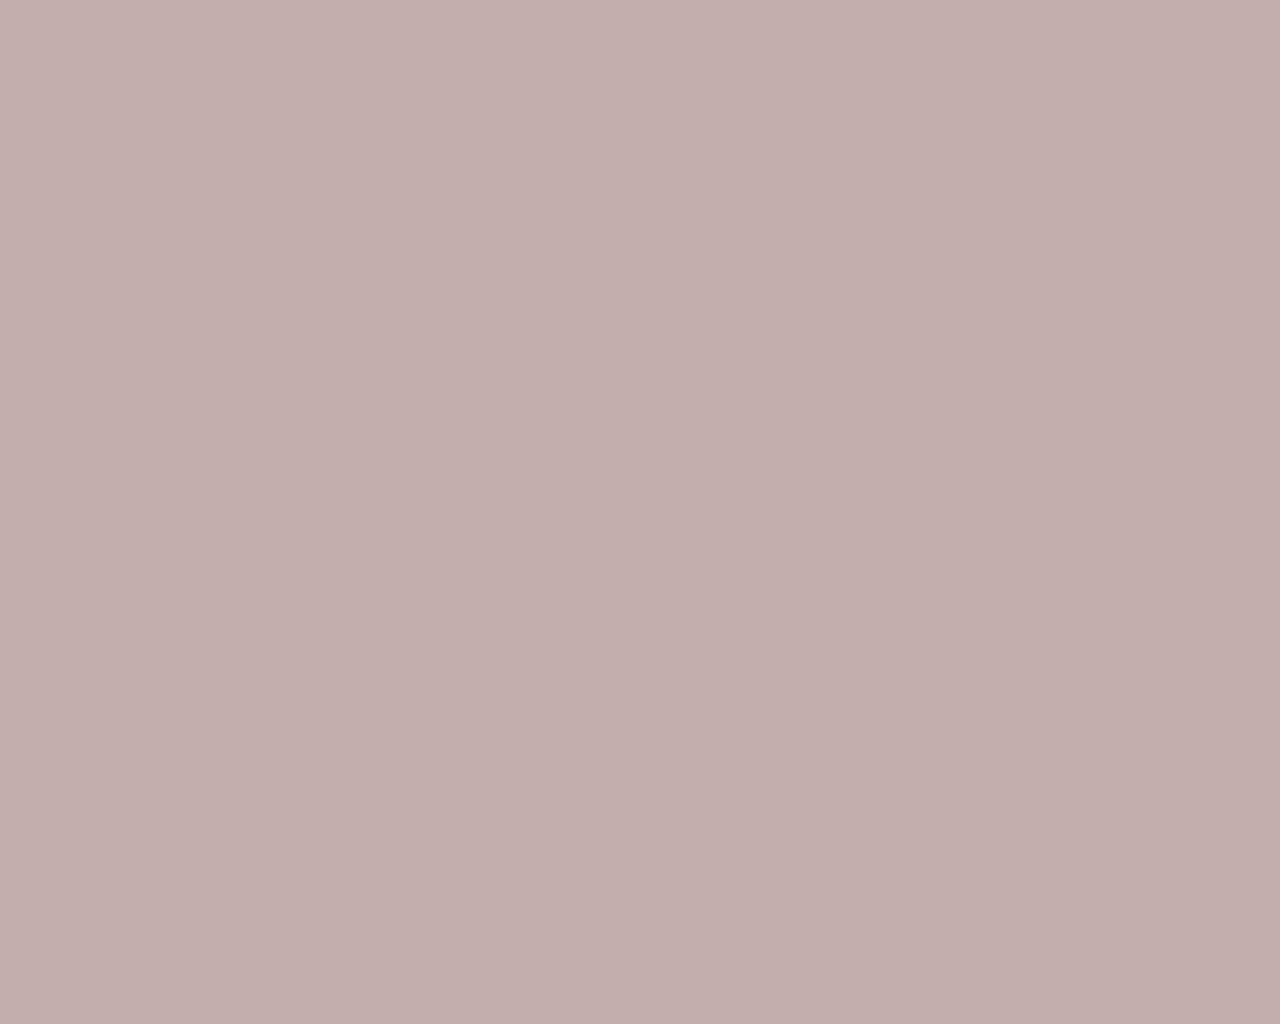 1280x1024 Silver Pink Solid Color Background